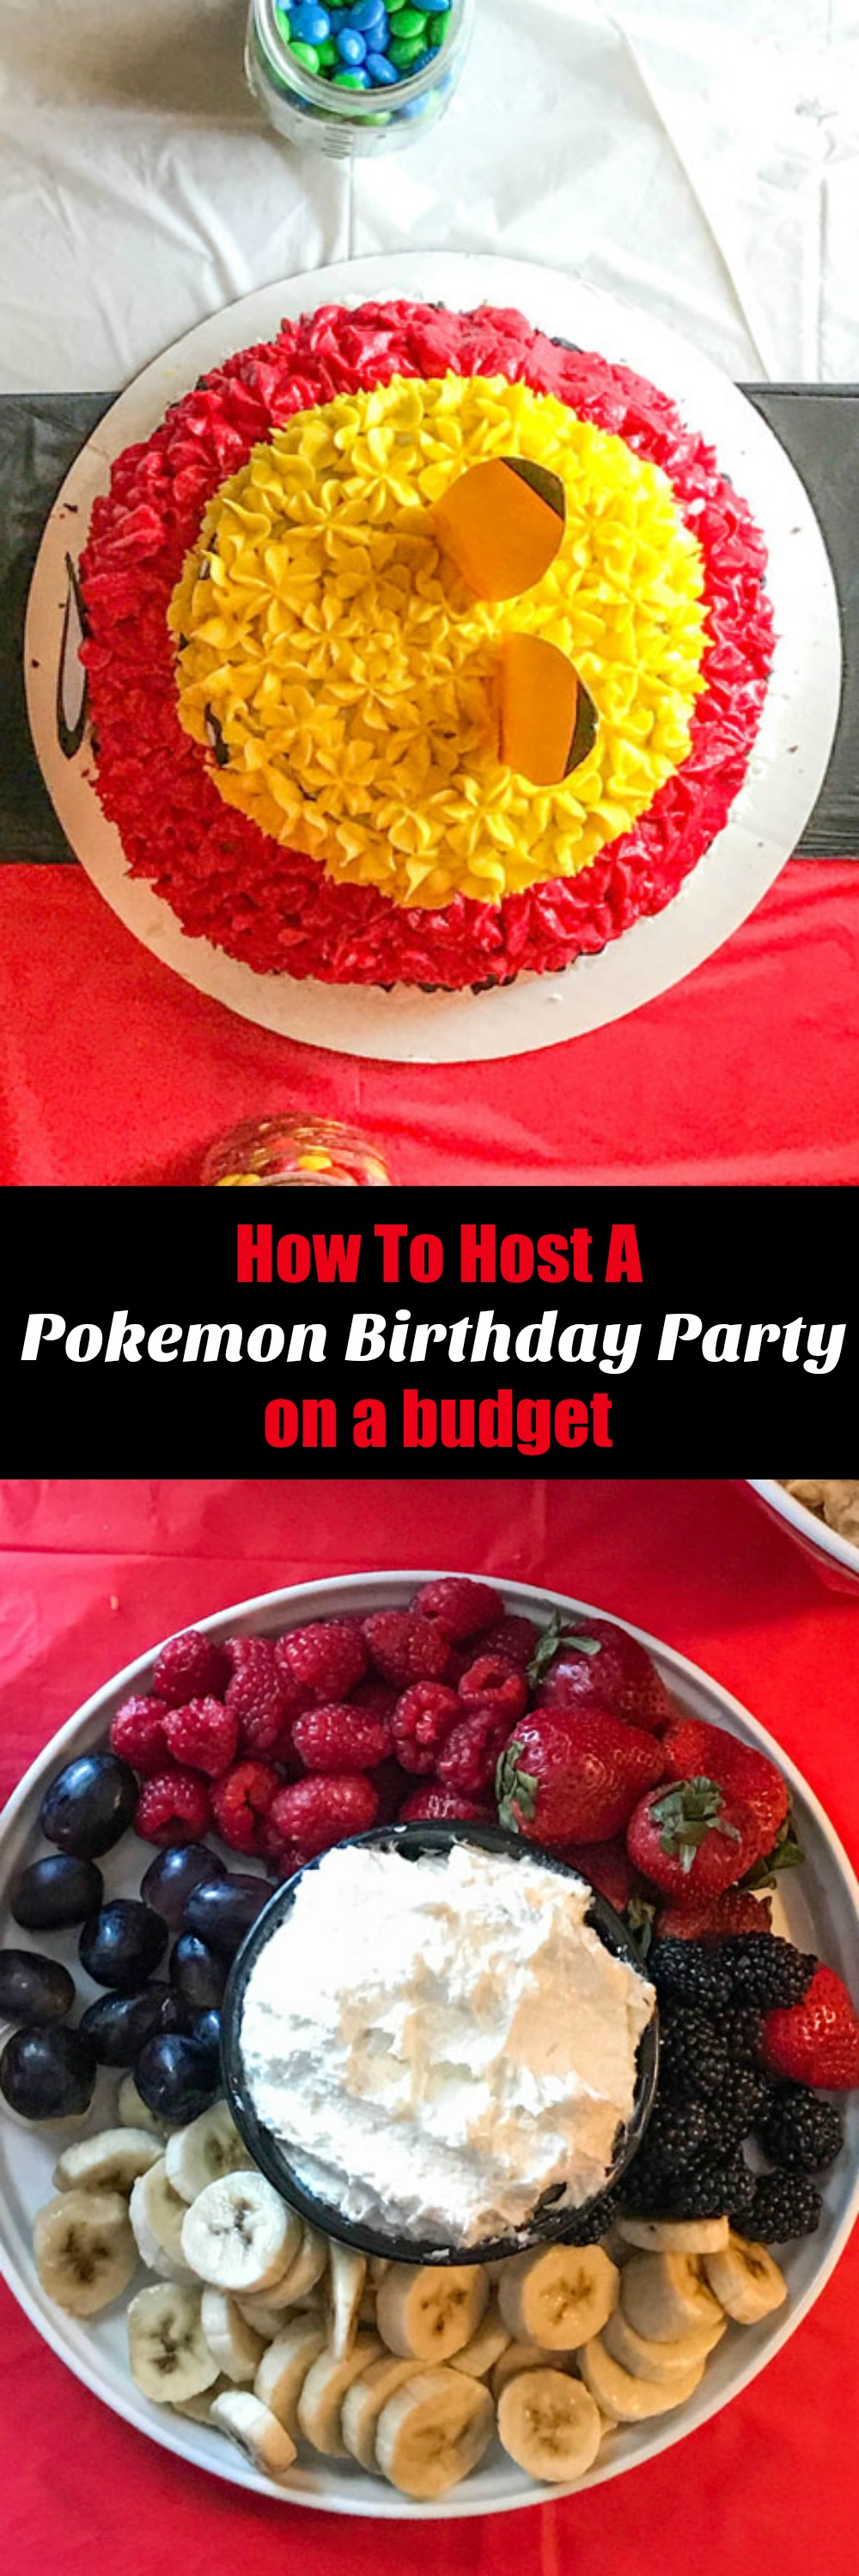 Do you have a son or daughter who's obsessed with Pokemon? We're sharing our tips on How To Host A Pokemon Birthday Party On A Budget. Fun, festive, pretty much everything you could want, without breaking the bank!